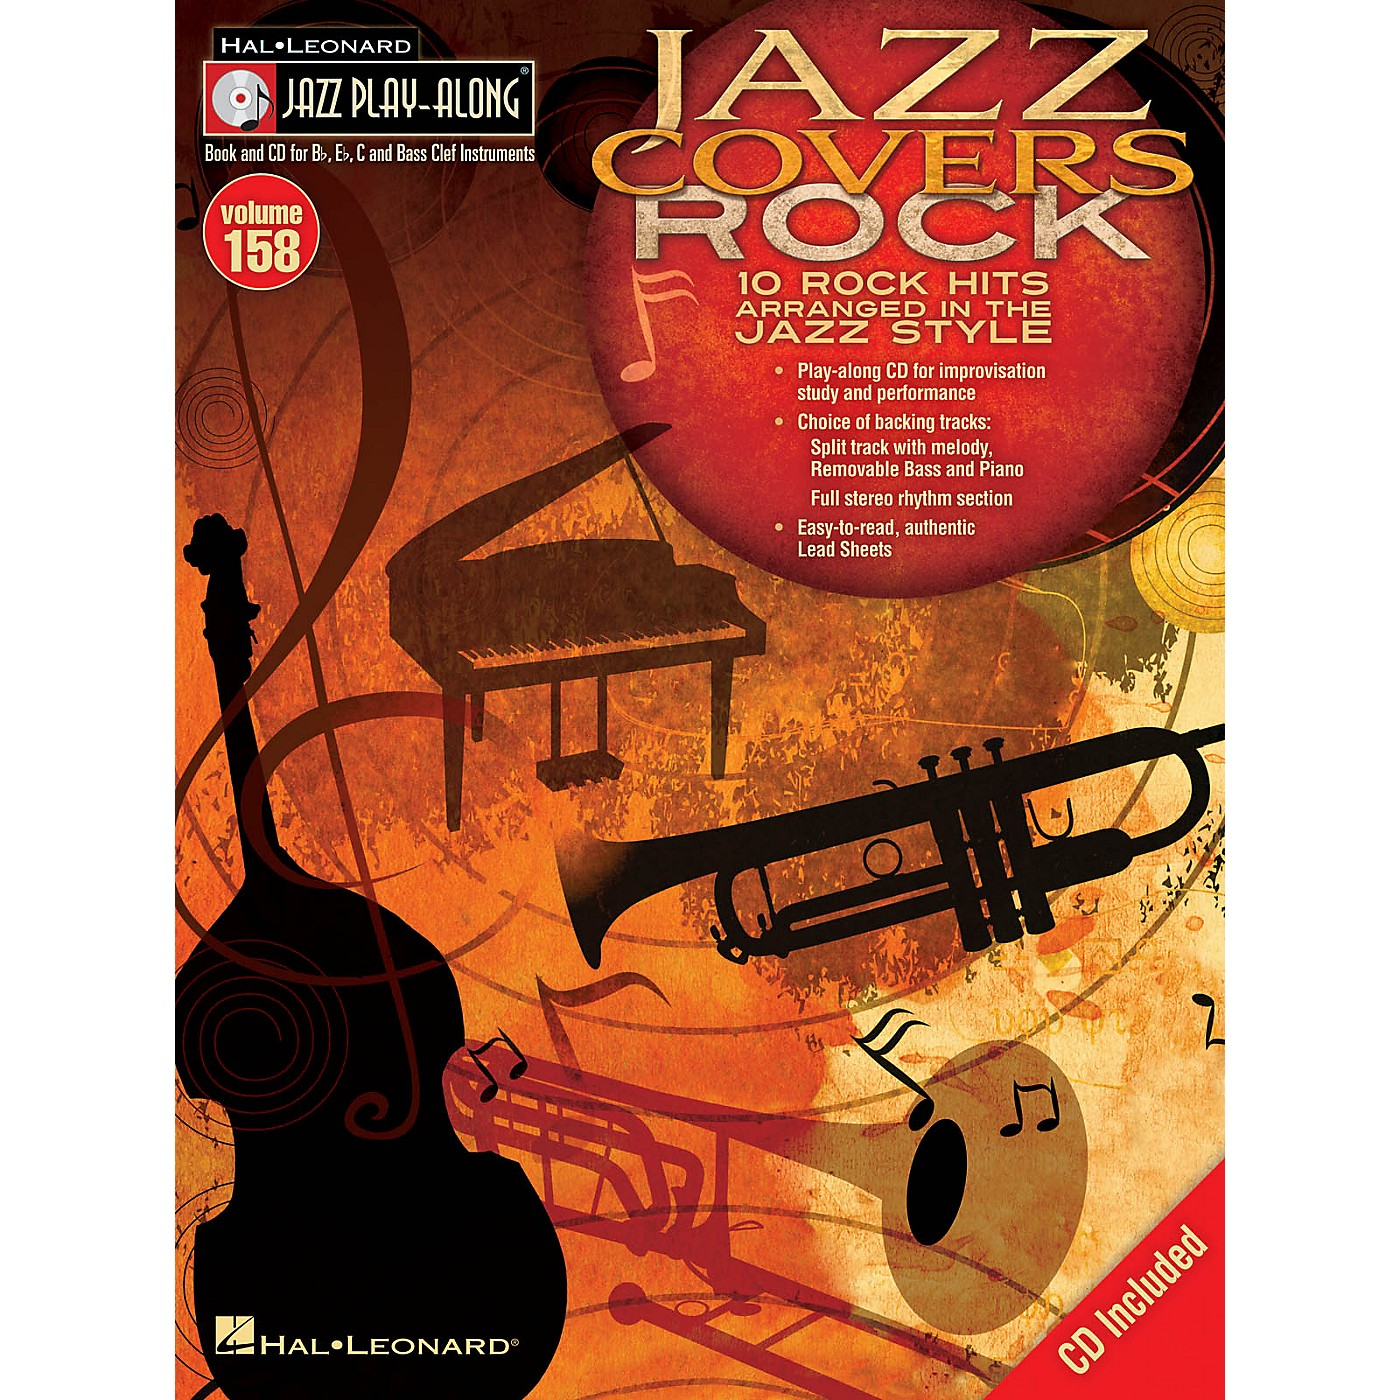 Hal Leonard Jazz Covers Rock (Jazz Play-Along Volume 158) Jazz Play Along Series Softcover with CD thumbnail